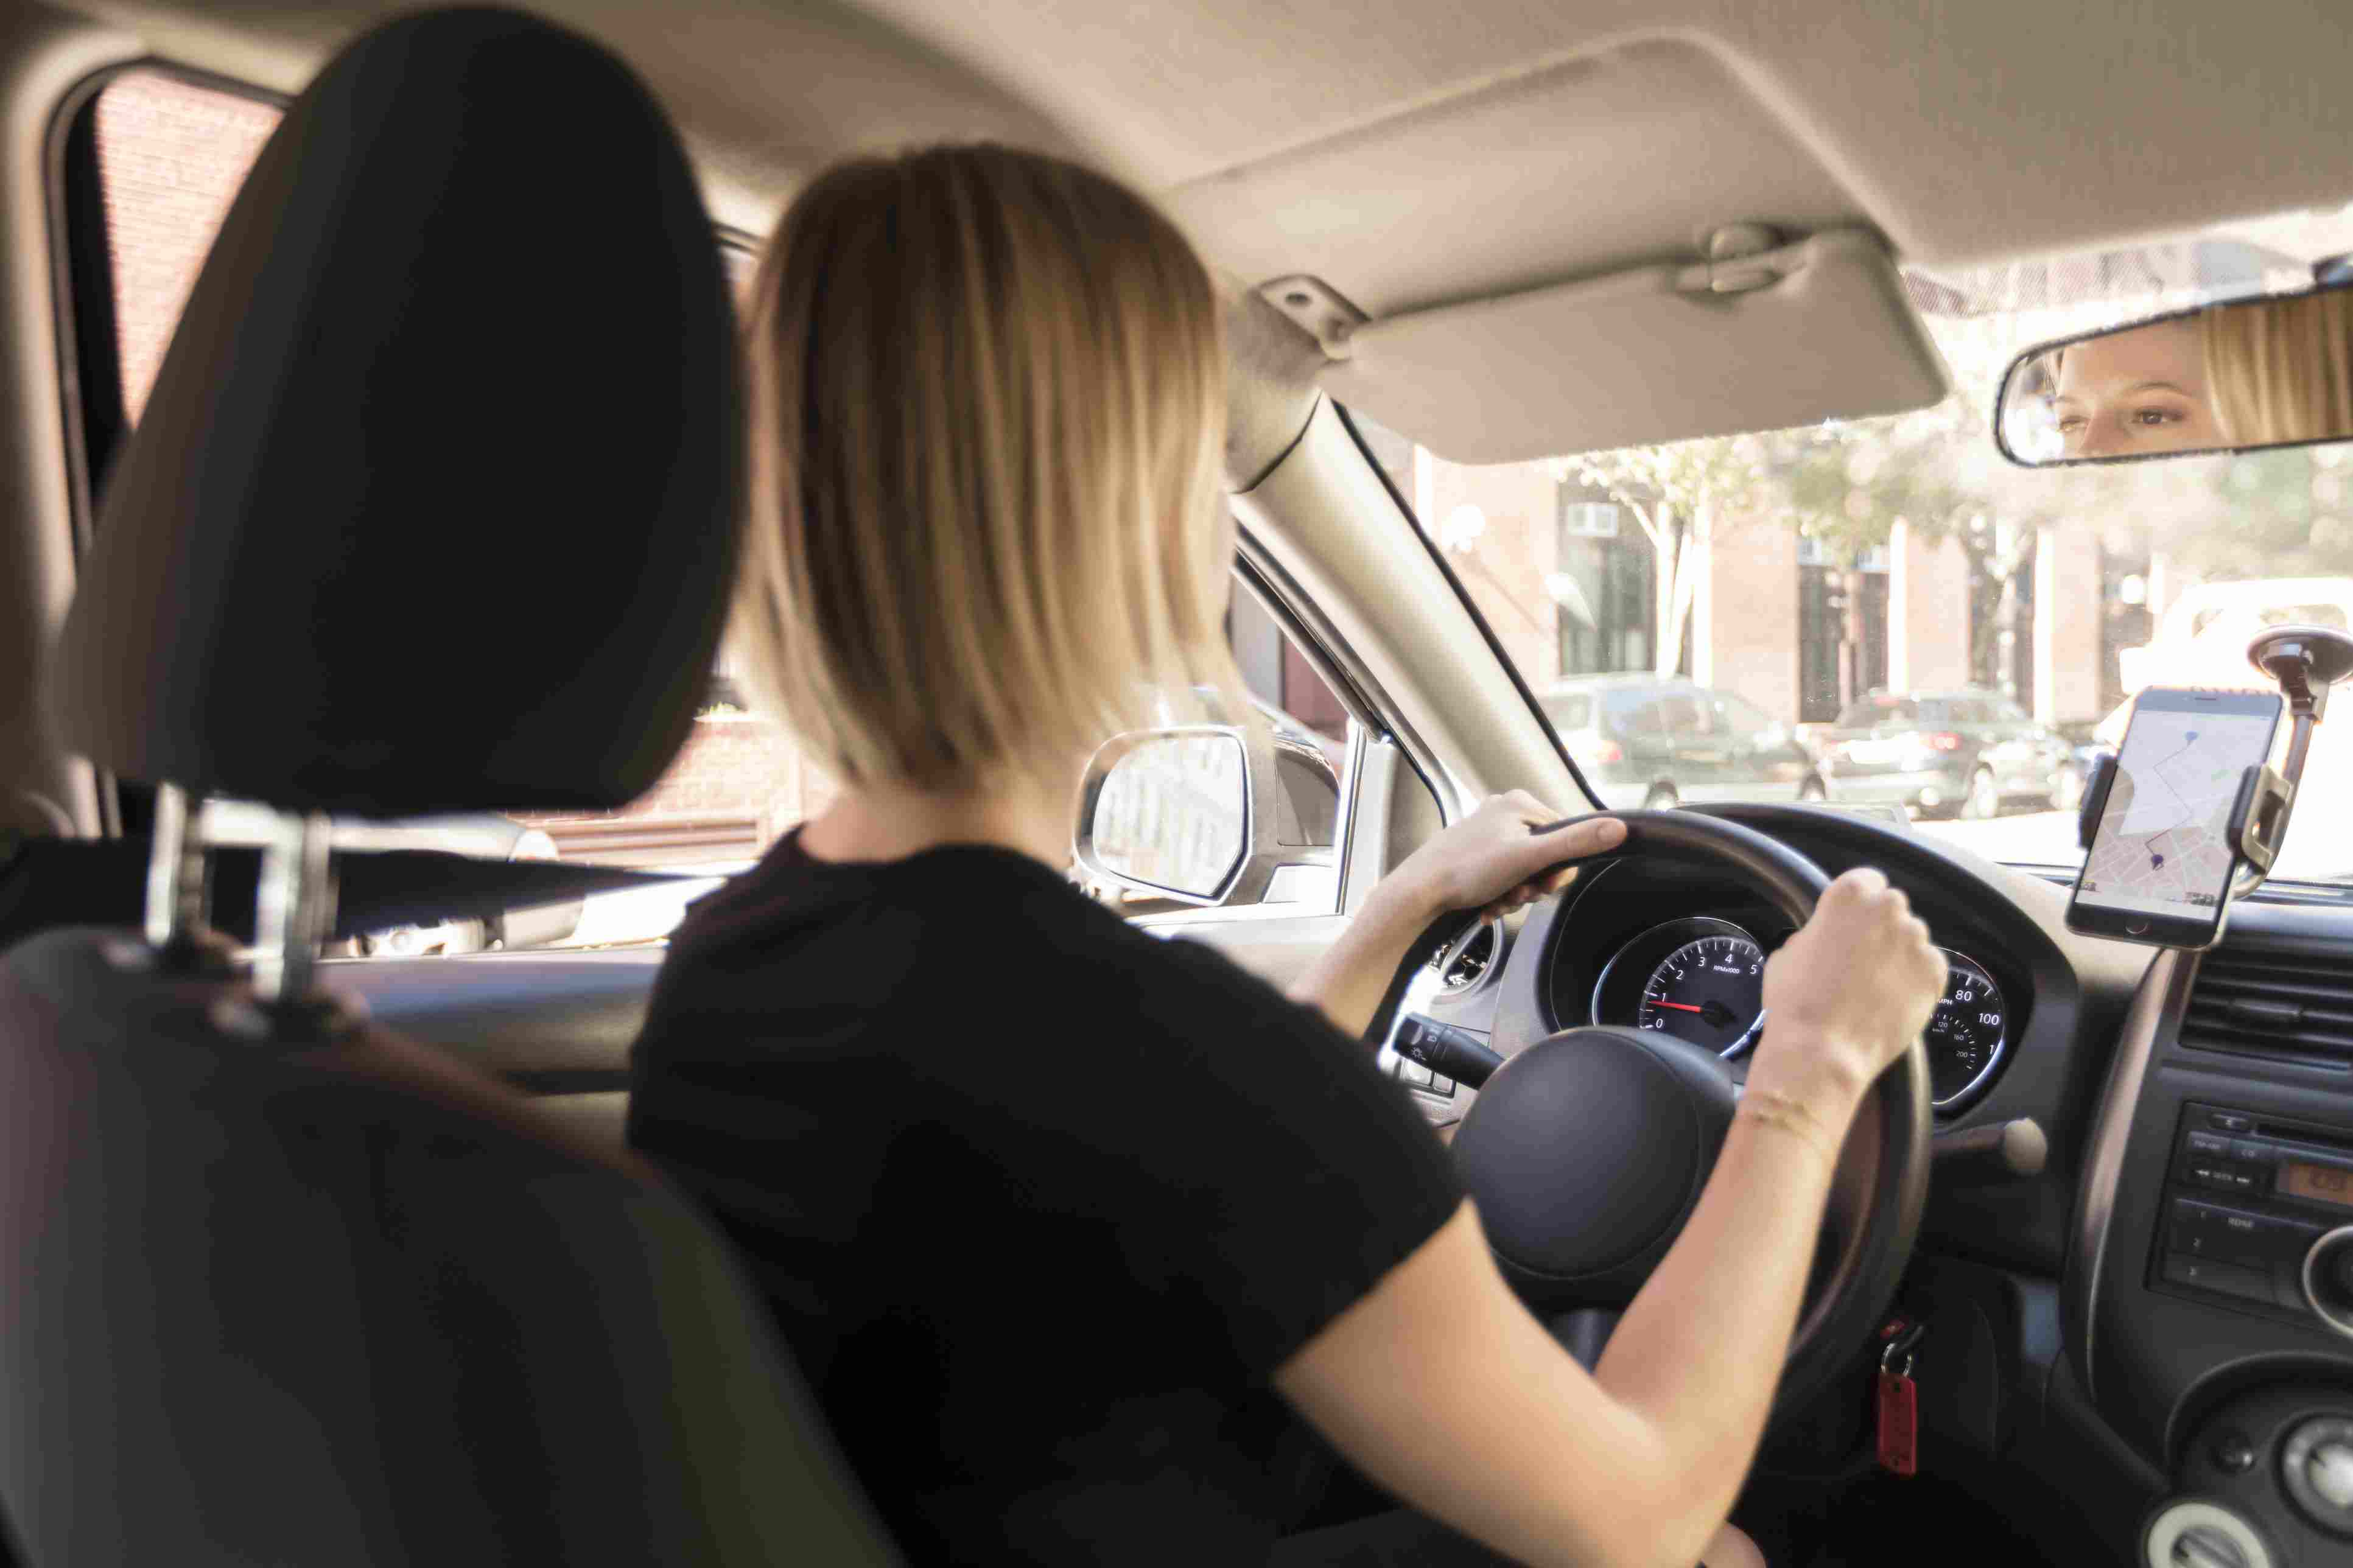 Woman behind the wheel of a car with a phone showing turn-by-turn directions mounted nearby.